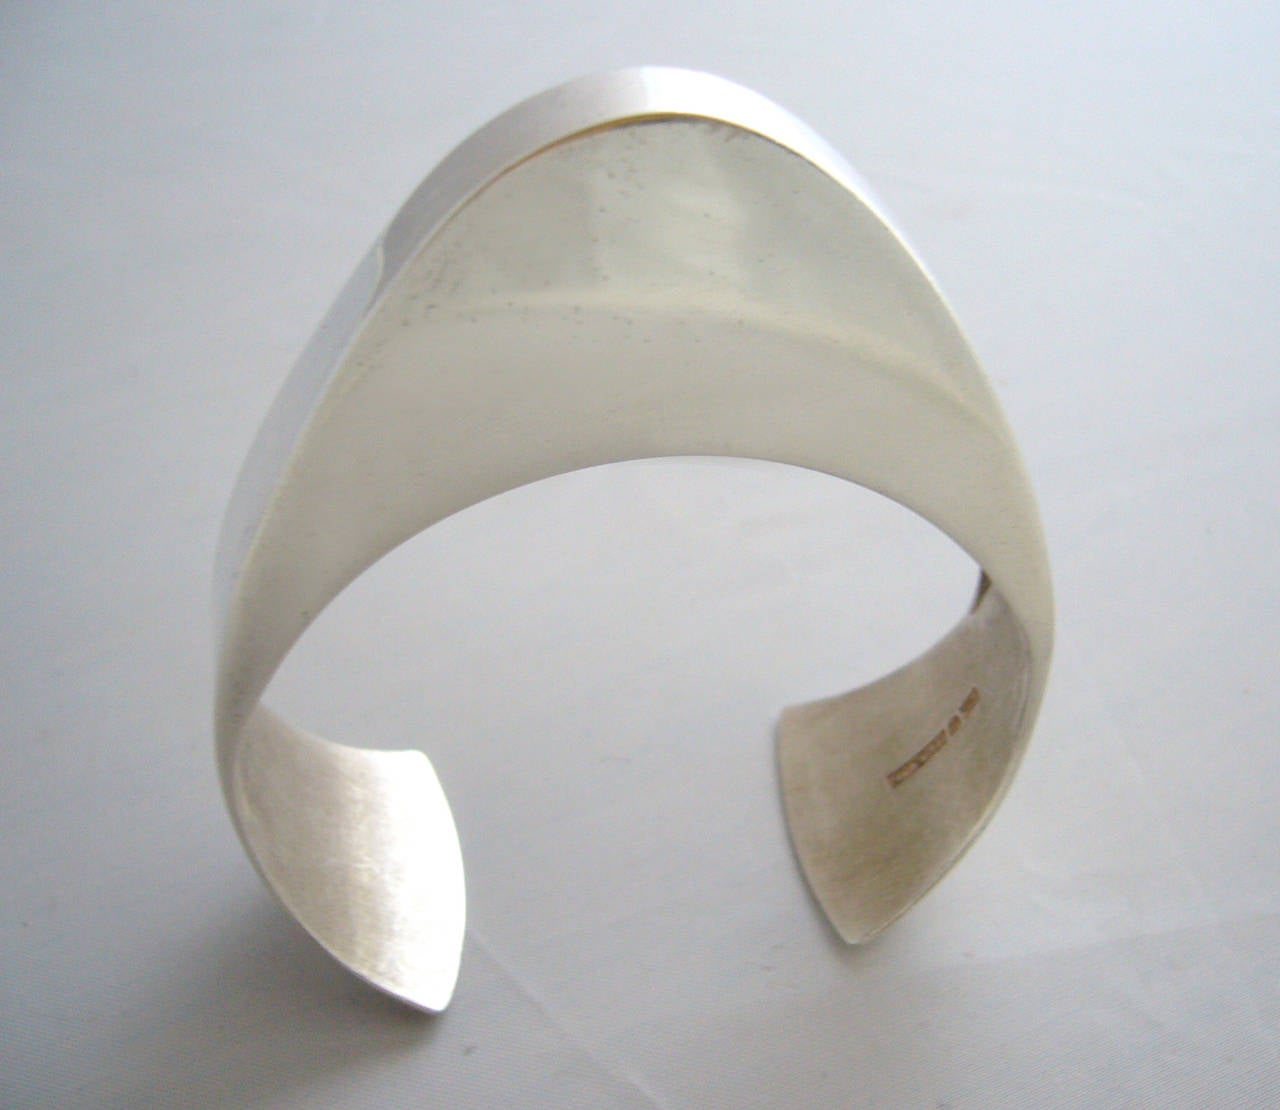 "Large scale sterling silver bracelet by Pekka Piekainen for Auran Kultaseppa of Finland, circa 1973.  Bracelet has an interior measurement of about 6 3/4"", including gap and is slightly adjustable.  Made for a small to medium wrist.  In very good"